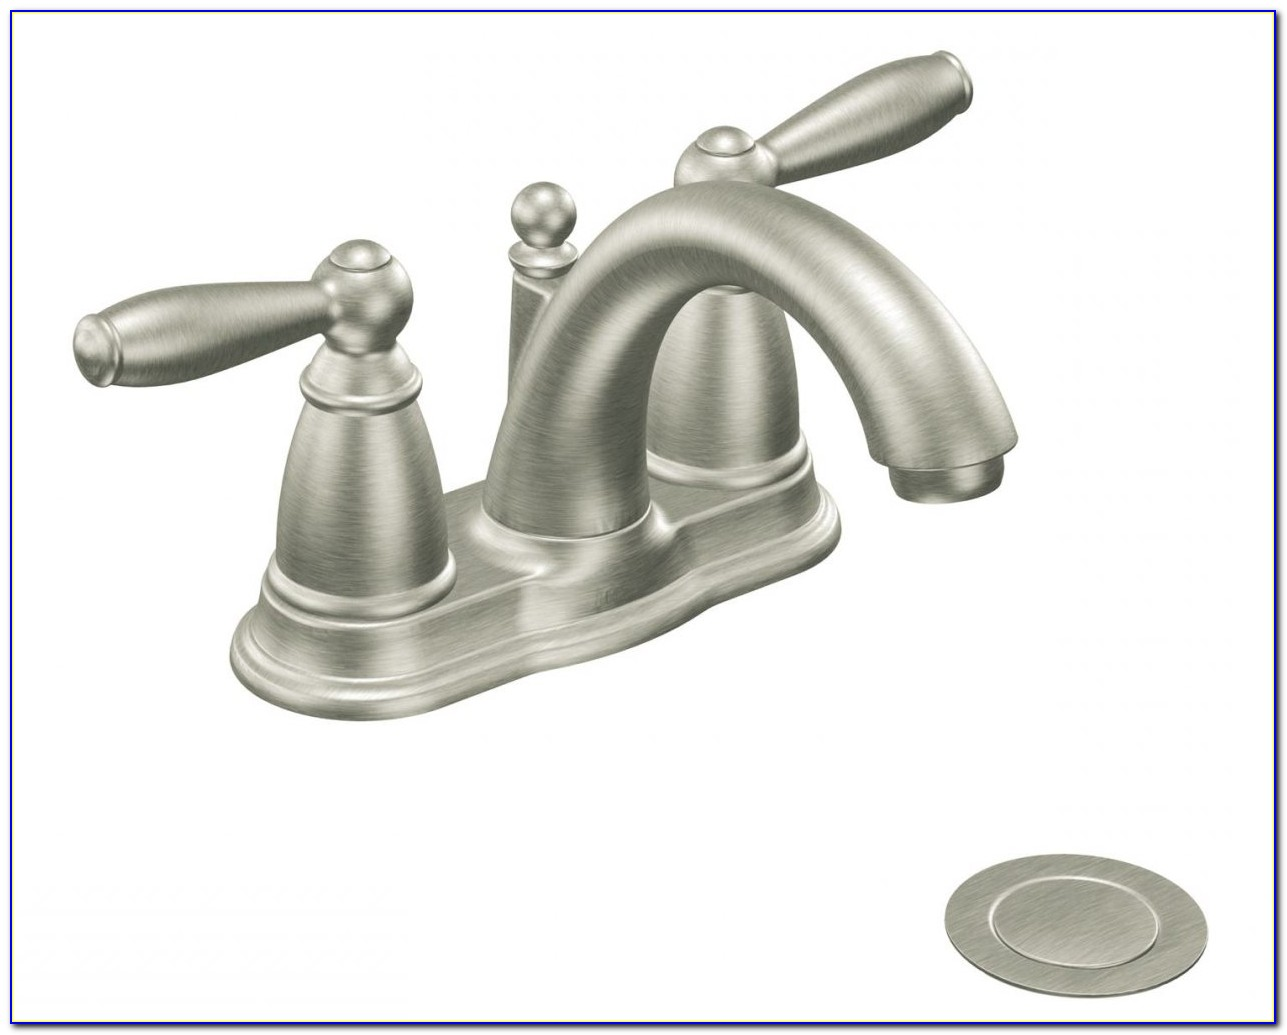 Moen Brushed Nickel Bathroom Faucet Cleaning